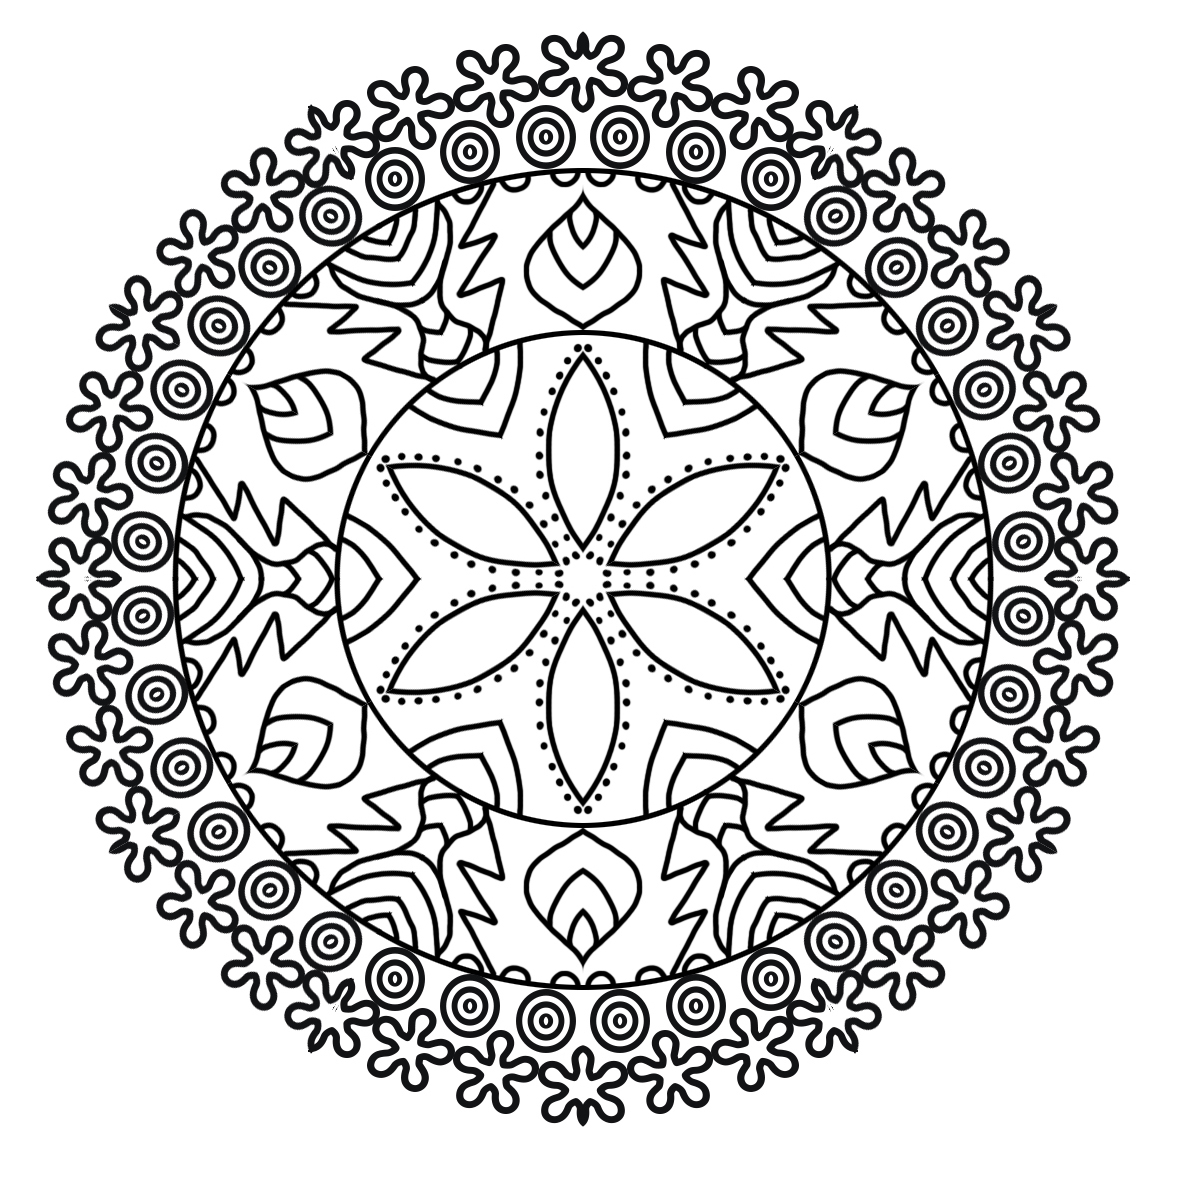 Mandala patterned coloring page